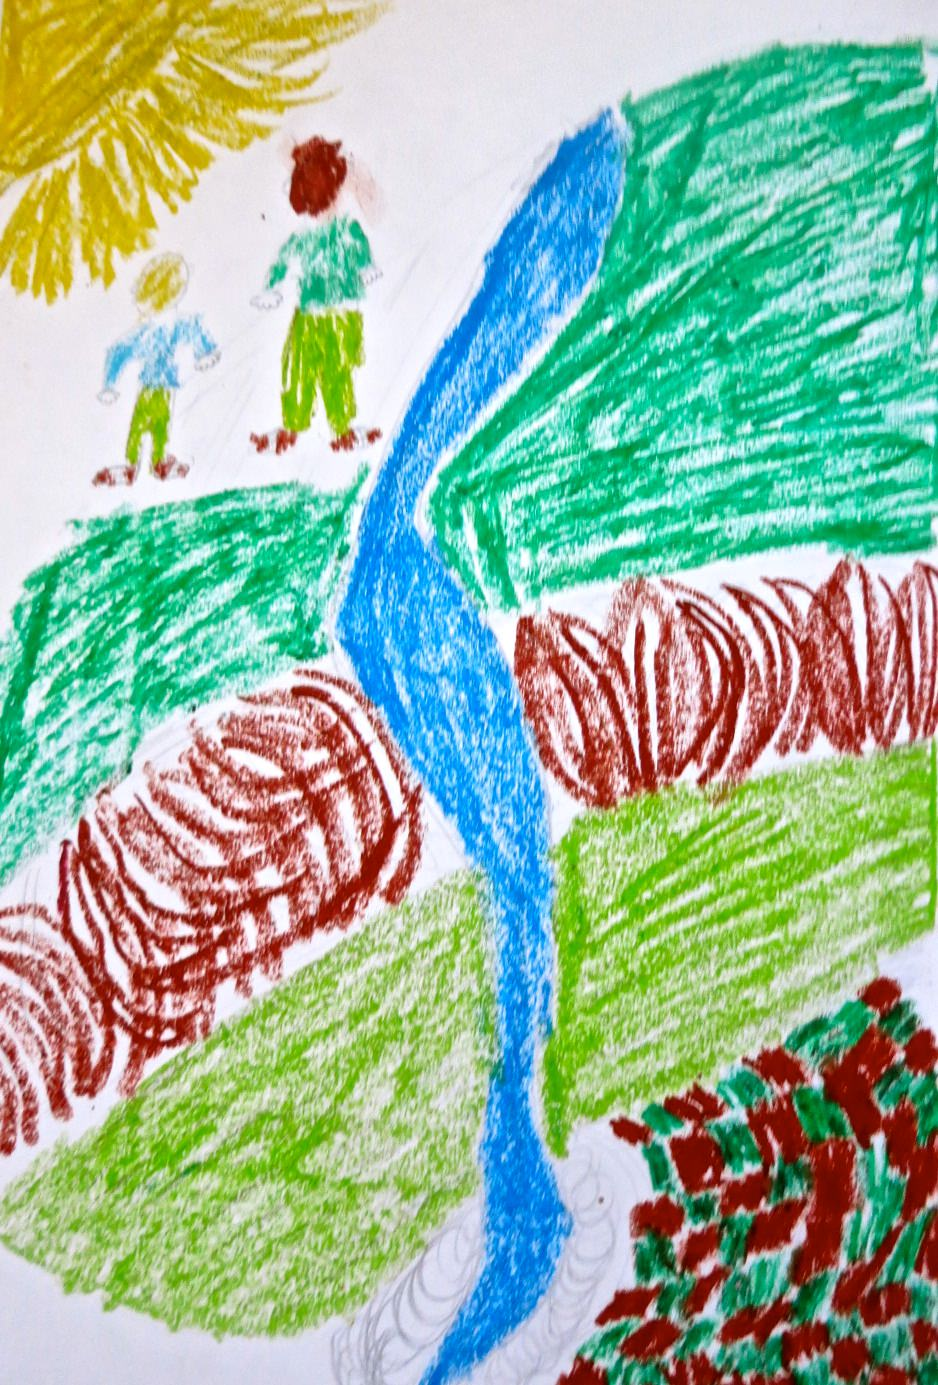 We see the coil of the river through the valley. Illustration by George B-N, Year 8, Sompting Abbotts Preparatory School